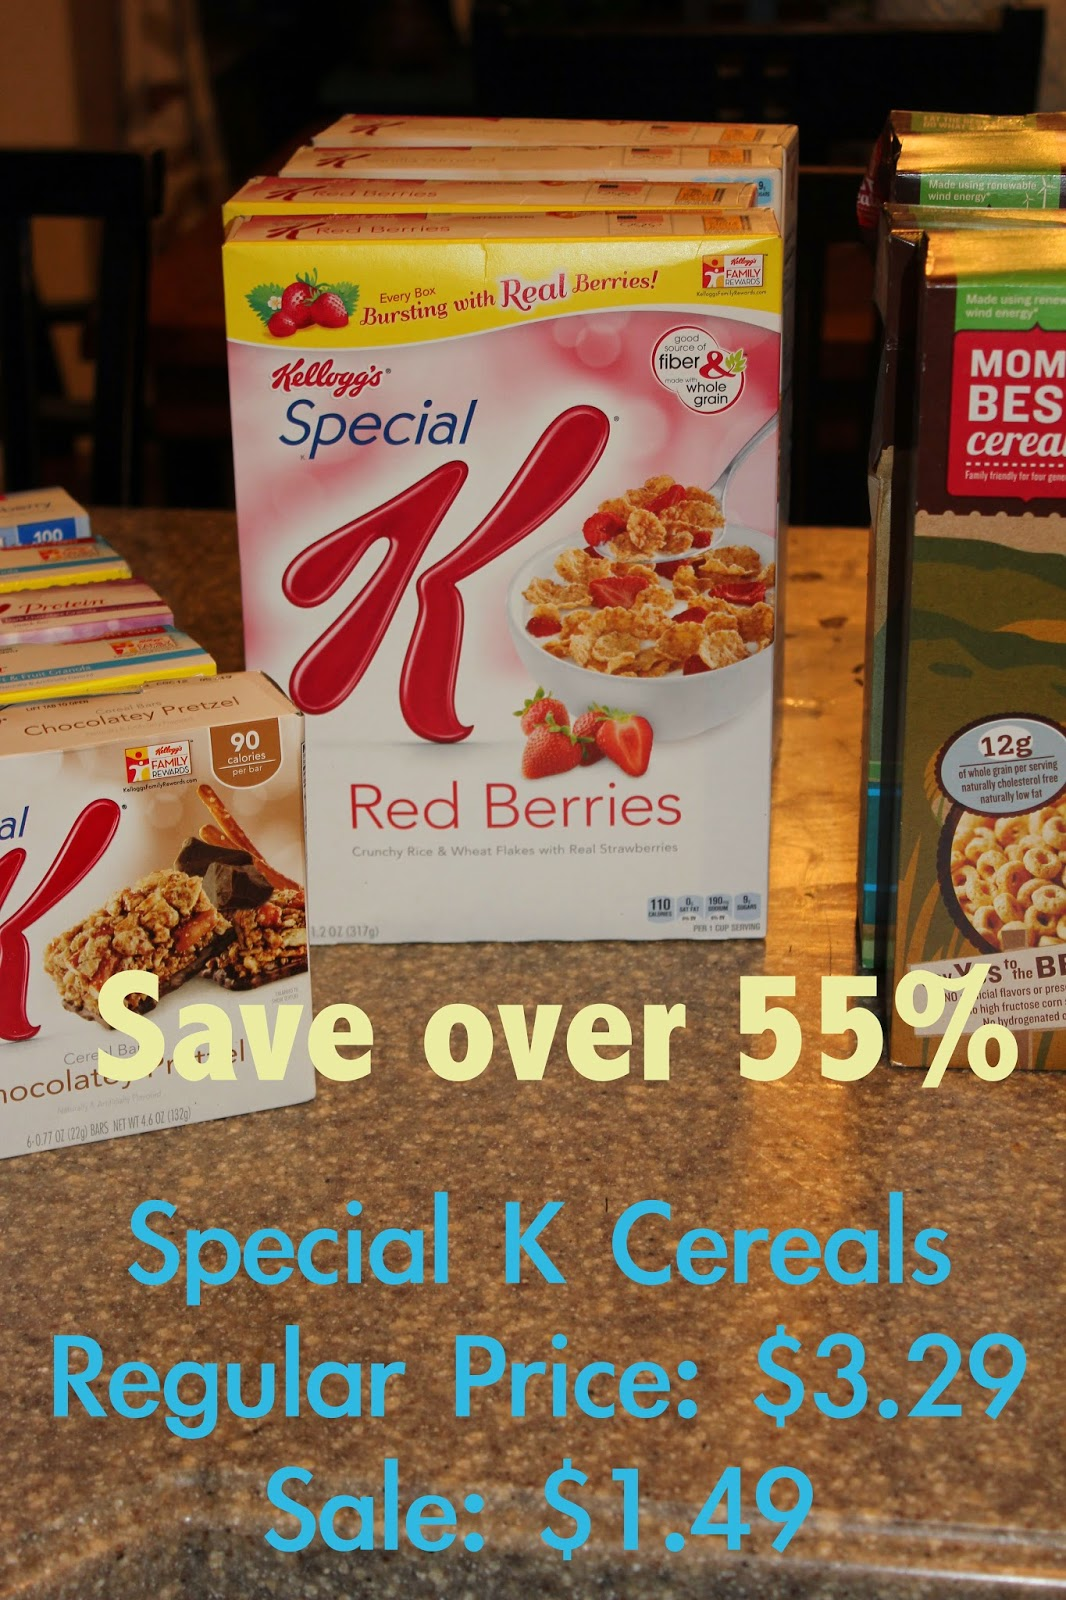 Special K cereals on sale for only $1.49-save over 55%